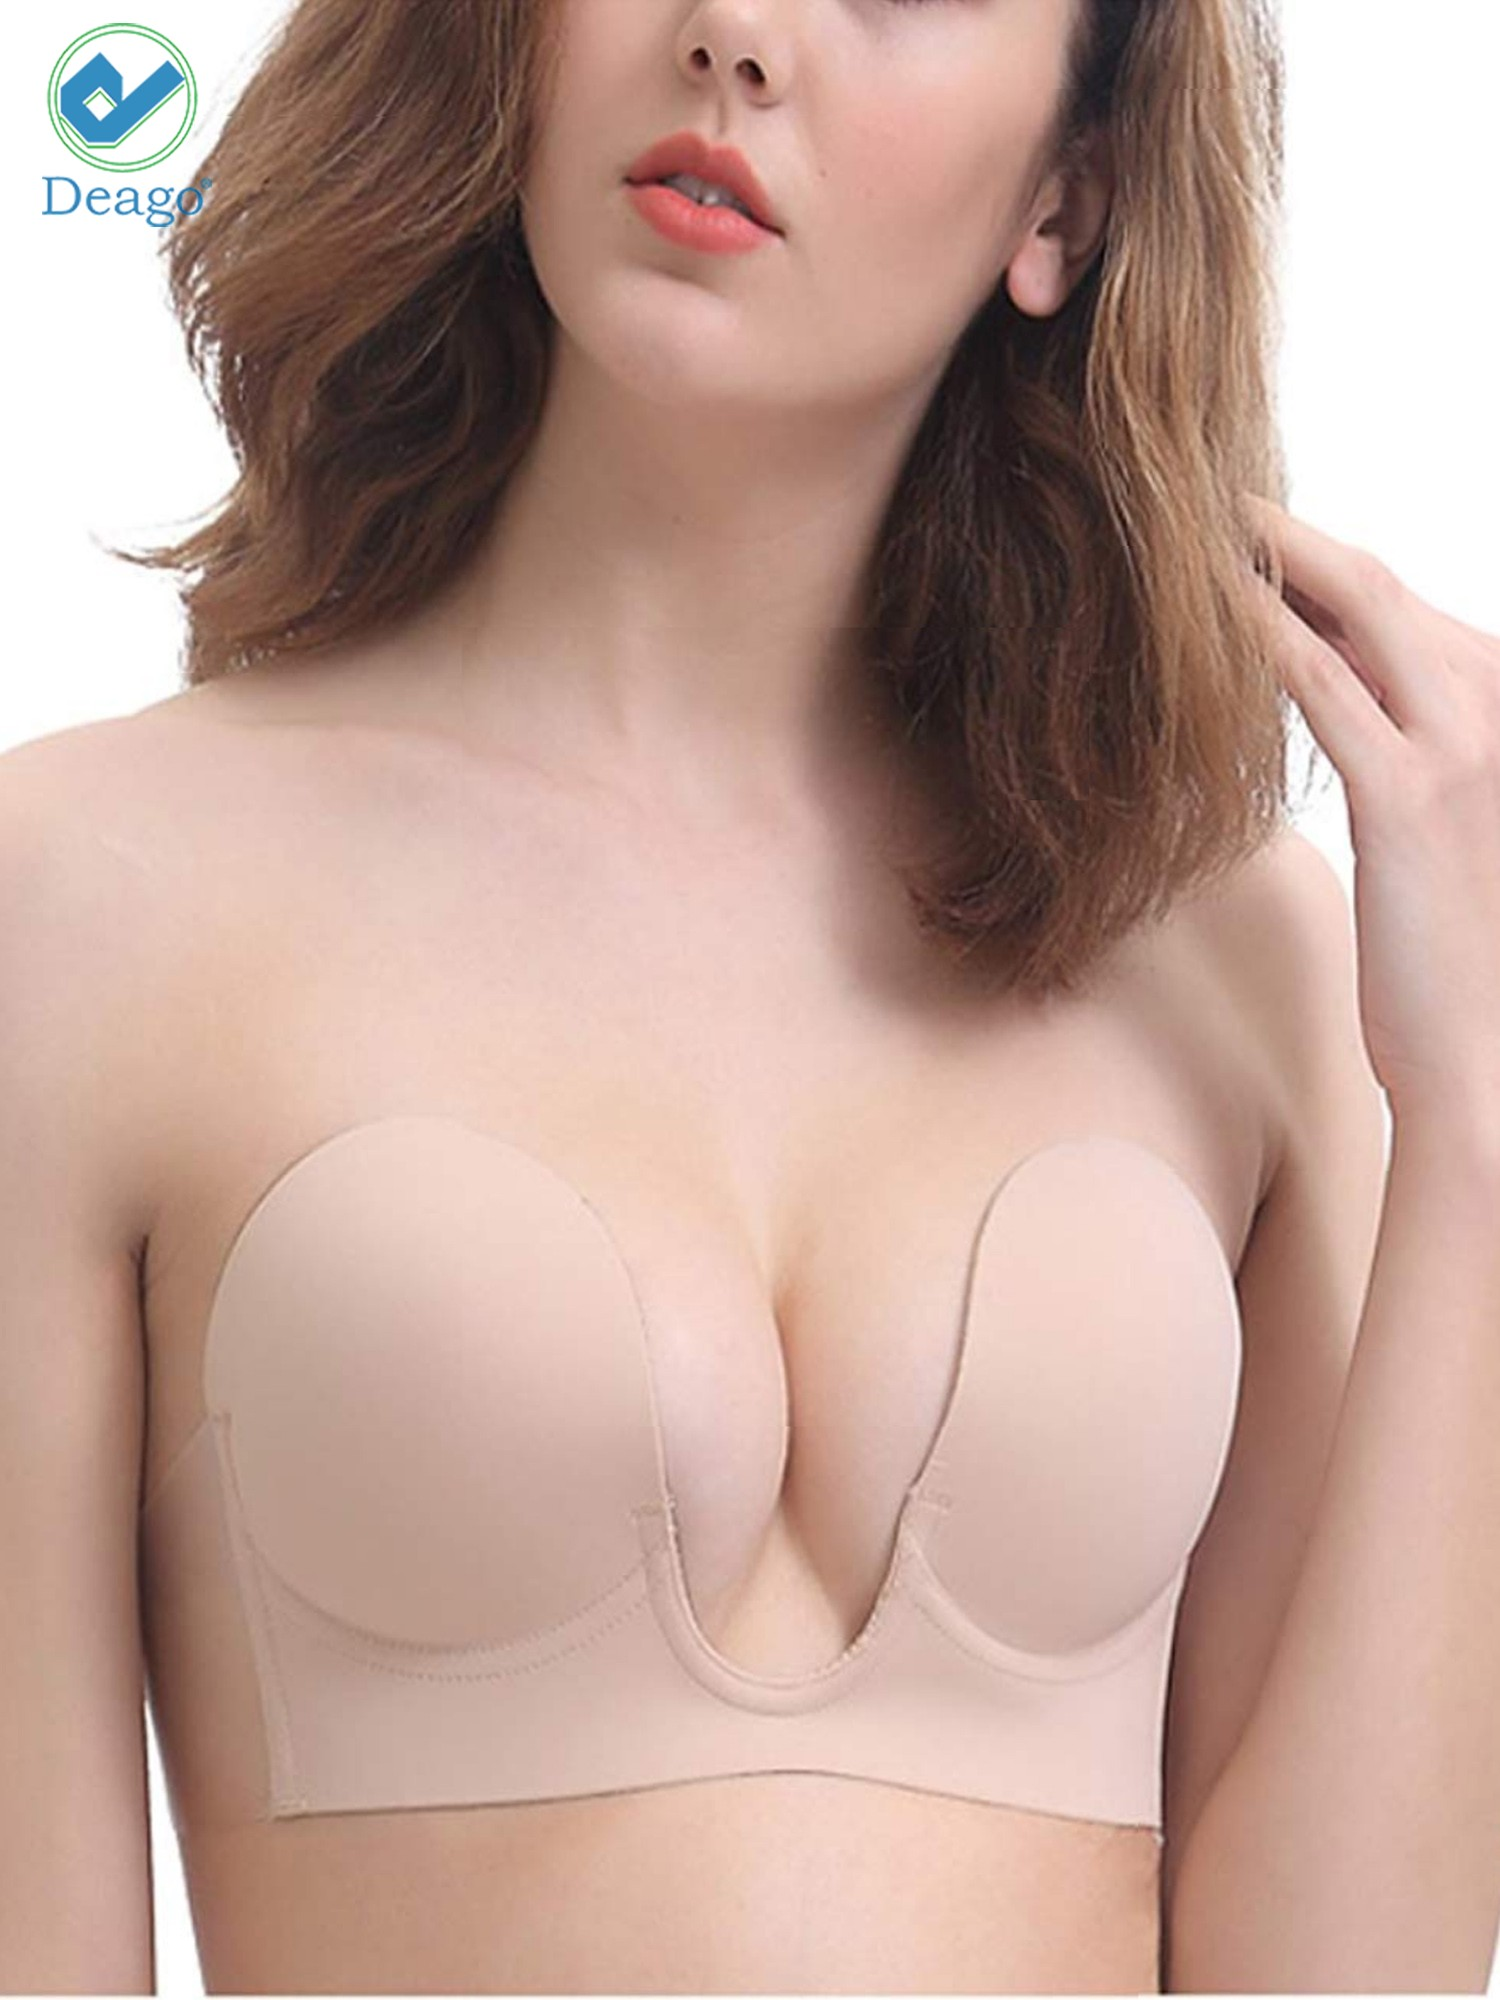 f335db0934 Deago - Deago Women s Strapless Sticky Bra Self Adhesive Invisible Bra  Backless Push up Bra Reusable Silicone Deep U Plunge Bra - Walmart.com